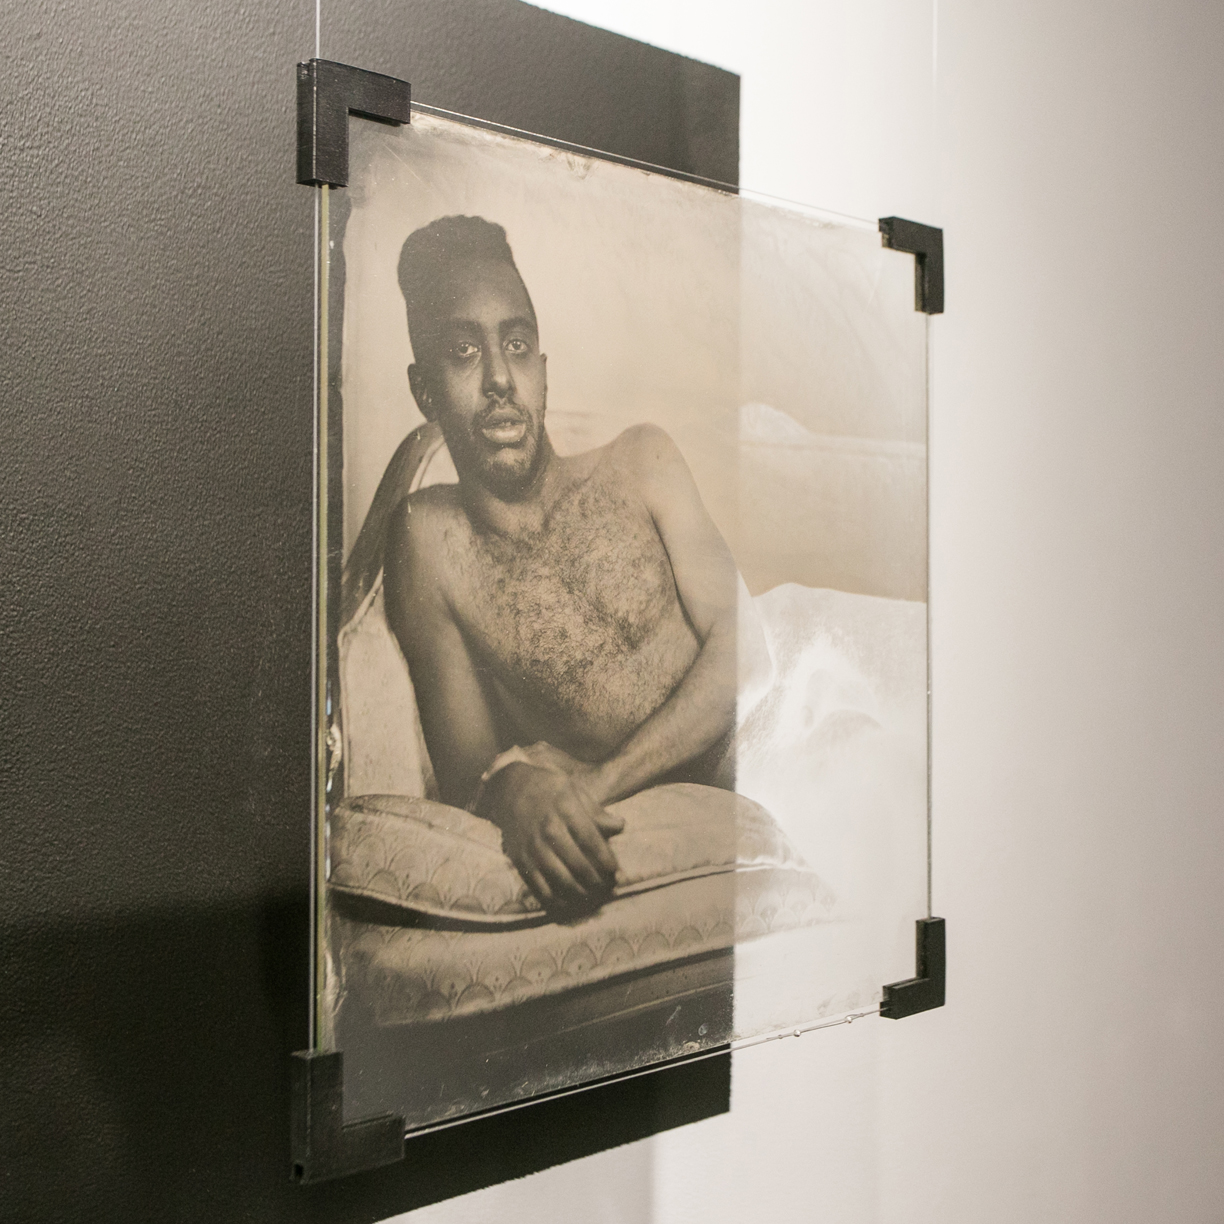 Robyn Hasty  Nathan  2014 Wet plate collodion ambrotype on glass plate 13 1/2 x 13 1/2 inches